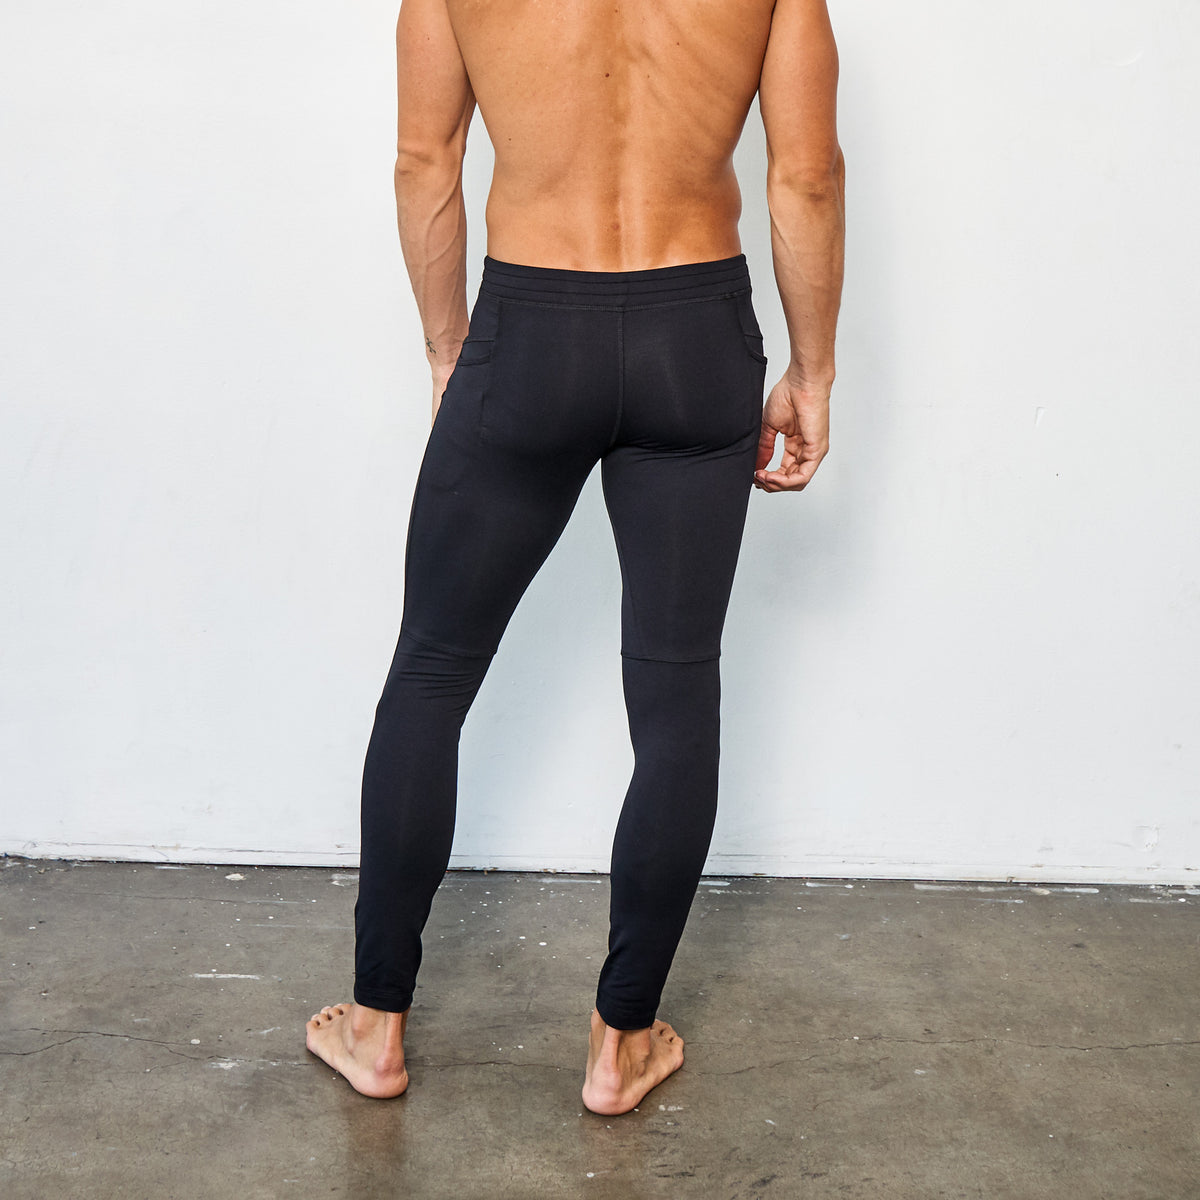 Unisex Compression Legging by Polartec®